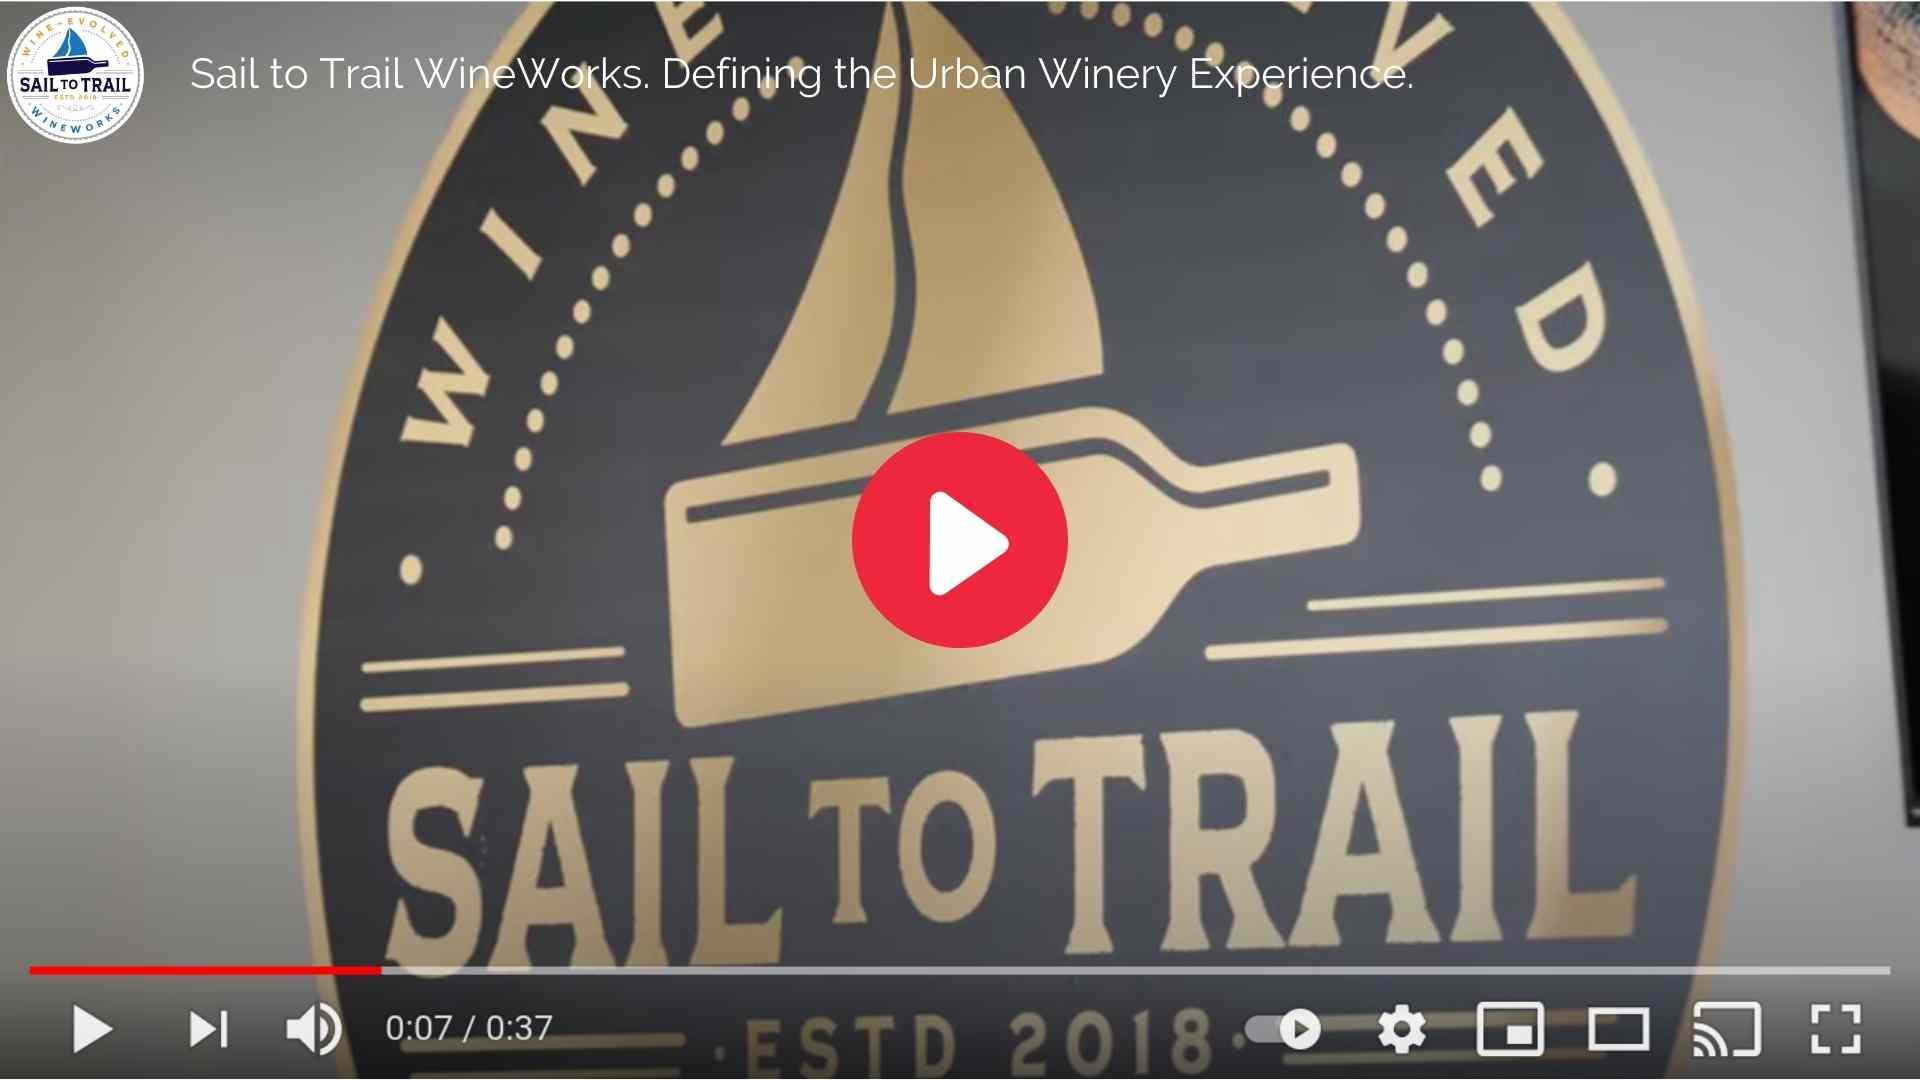 A superb video about the Sail to Trail Tasting Experience.